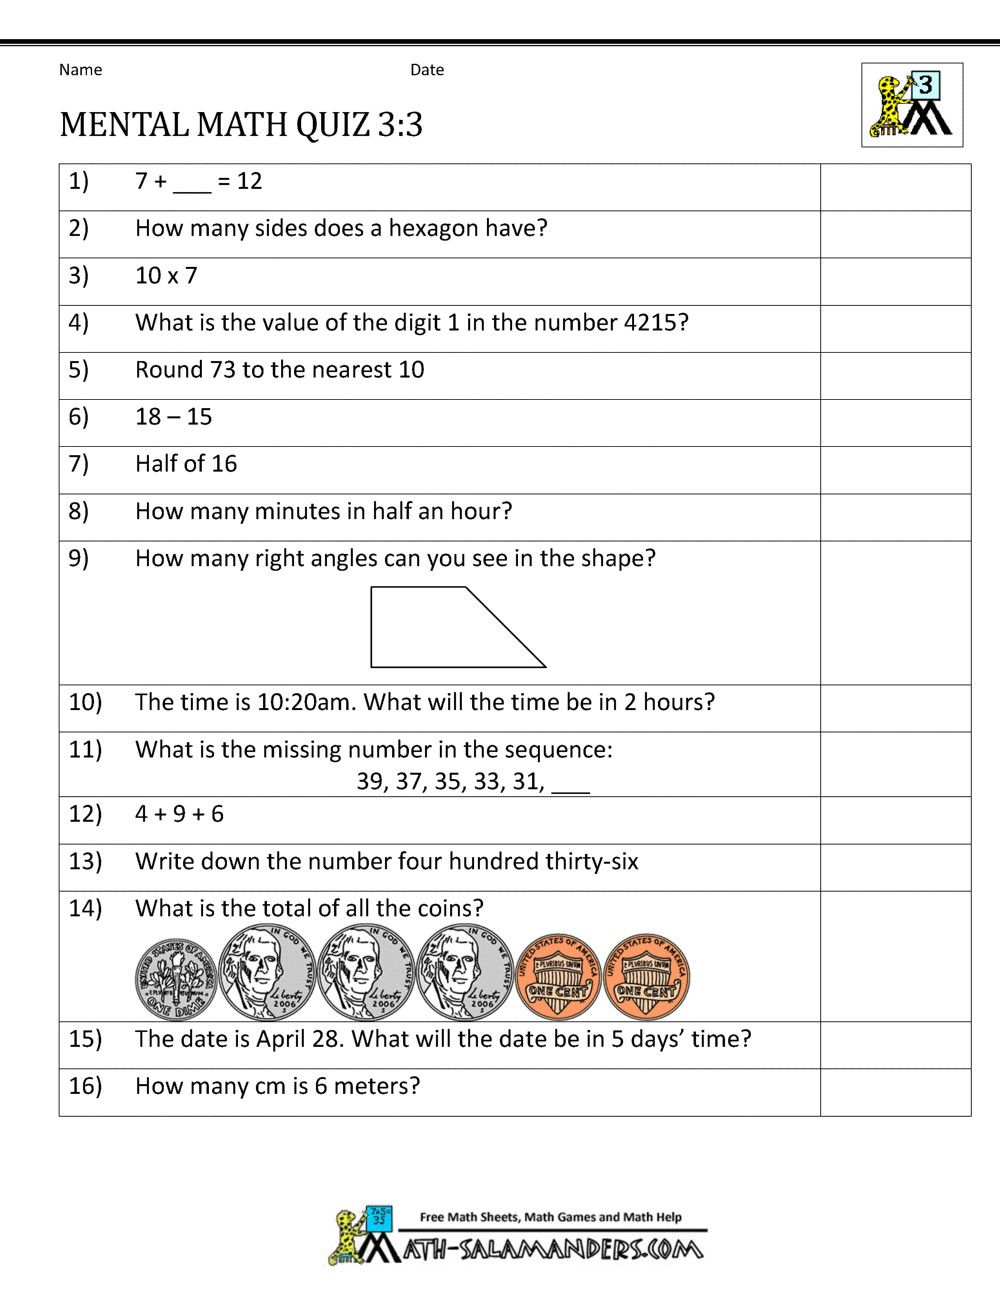 5 Mental Maths Worksheets For Class 3 2 In 2020 Everyday Math Mental Maths Worksheets Math Worksheets